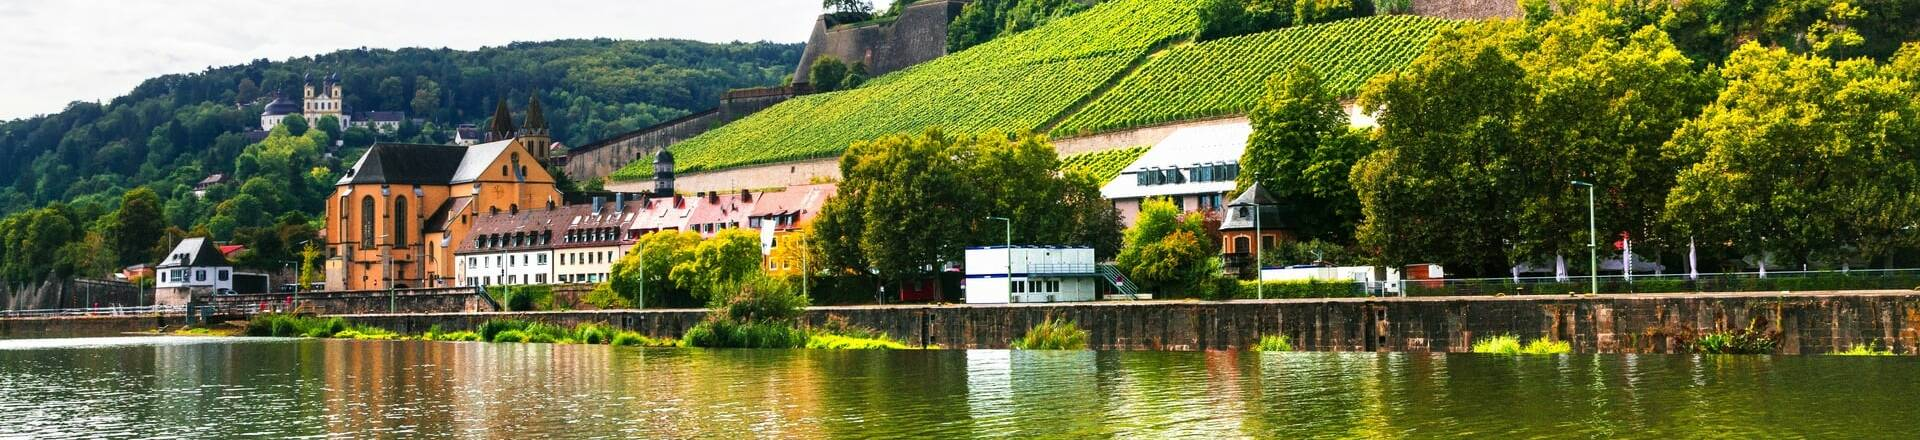 Cheap hotels in wuerzburg from 56 for Hotels in wuerzburg